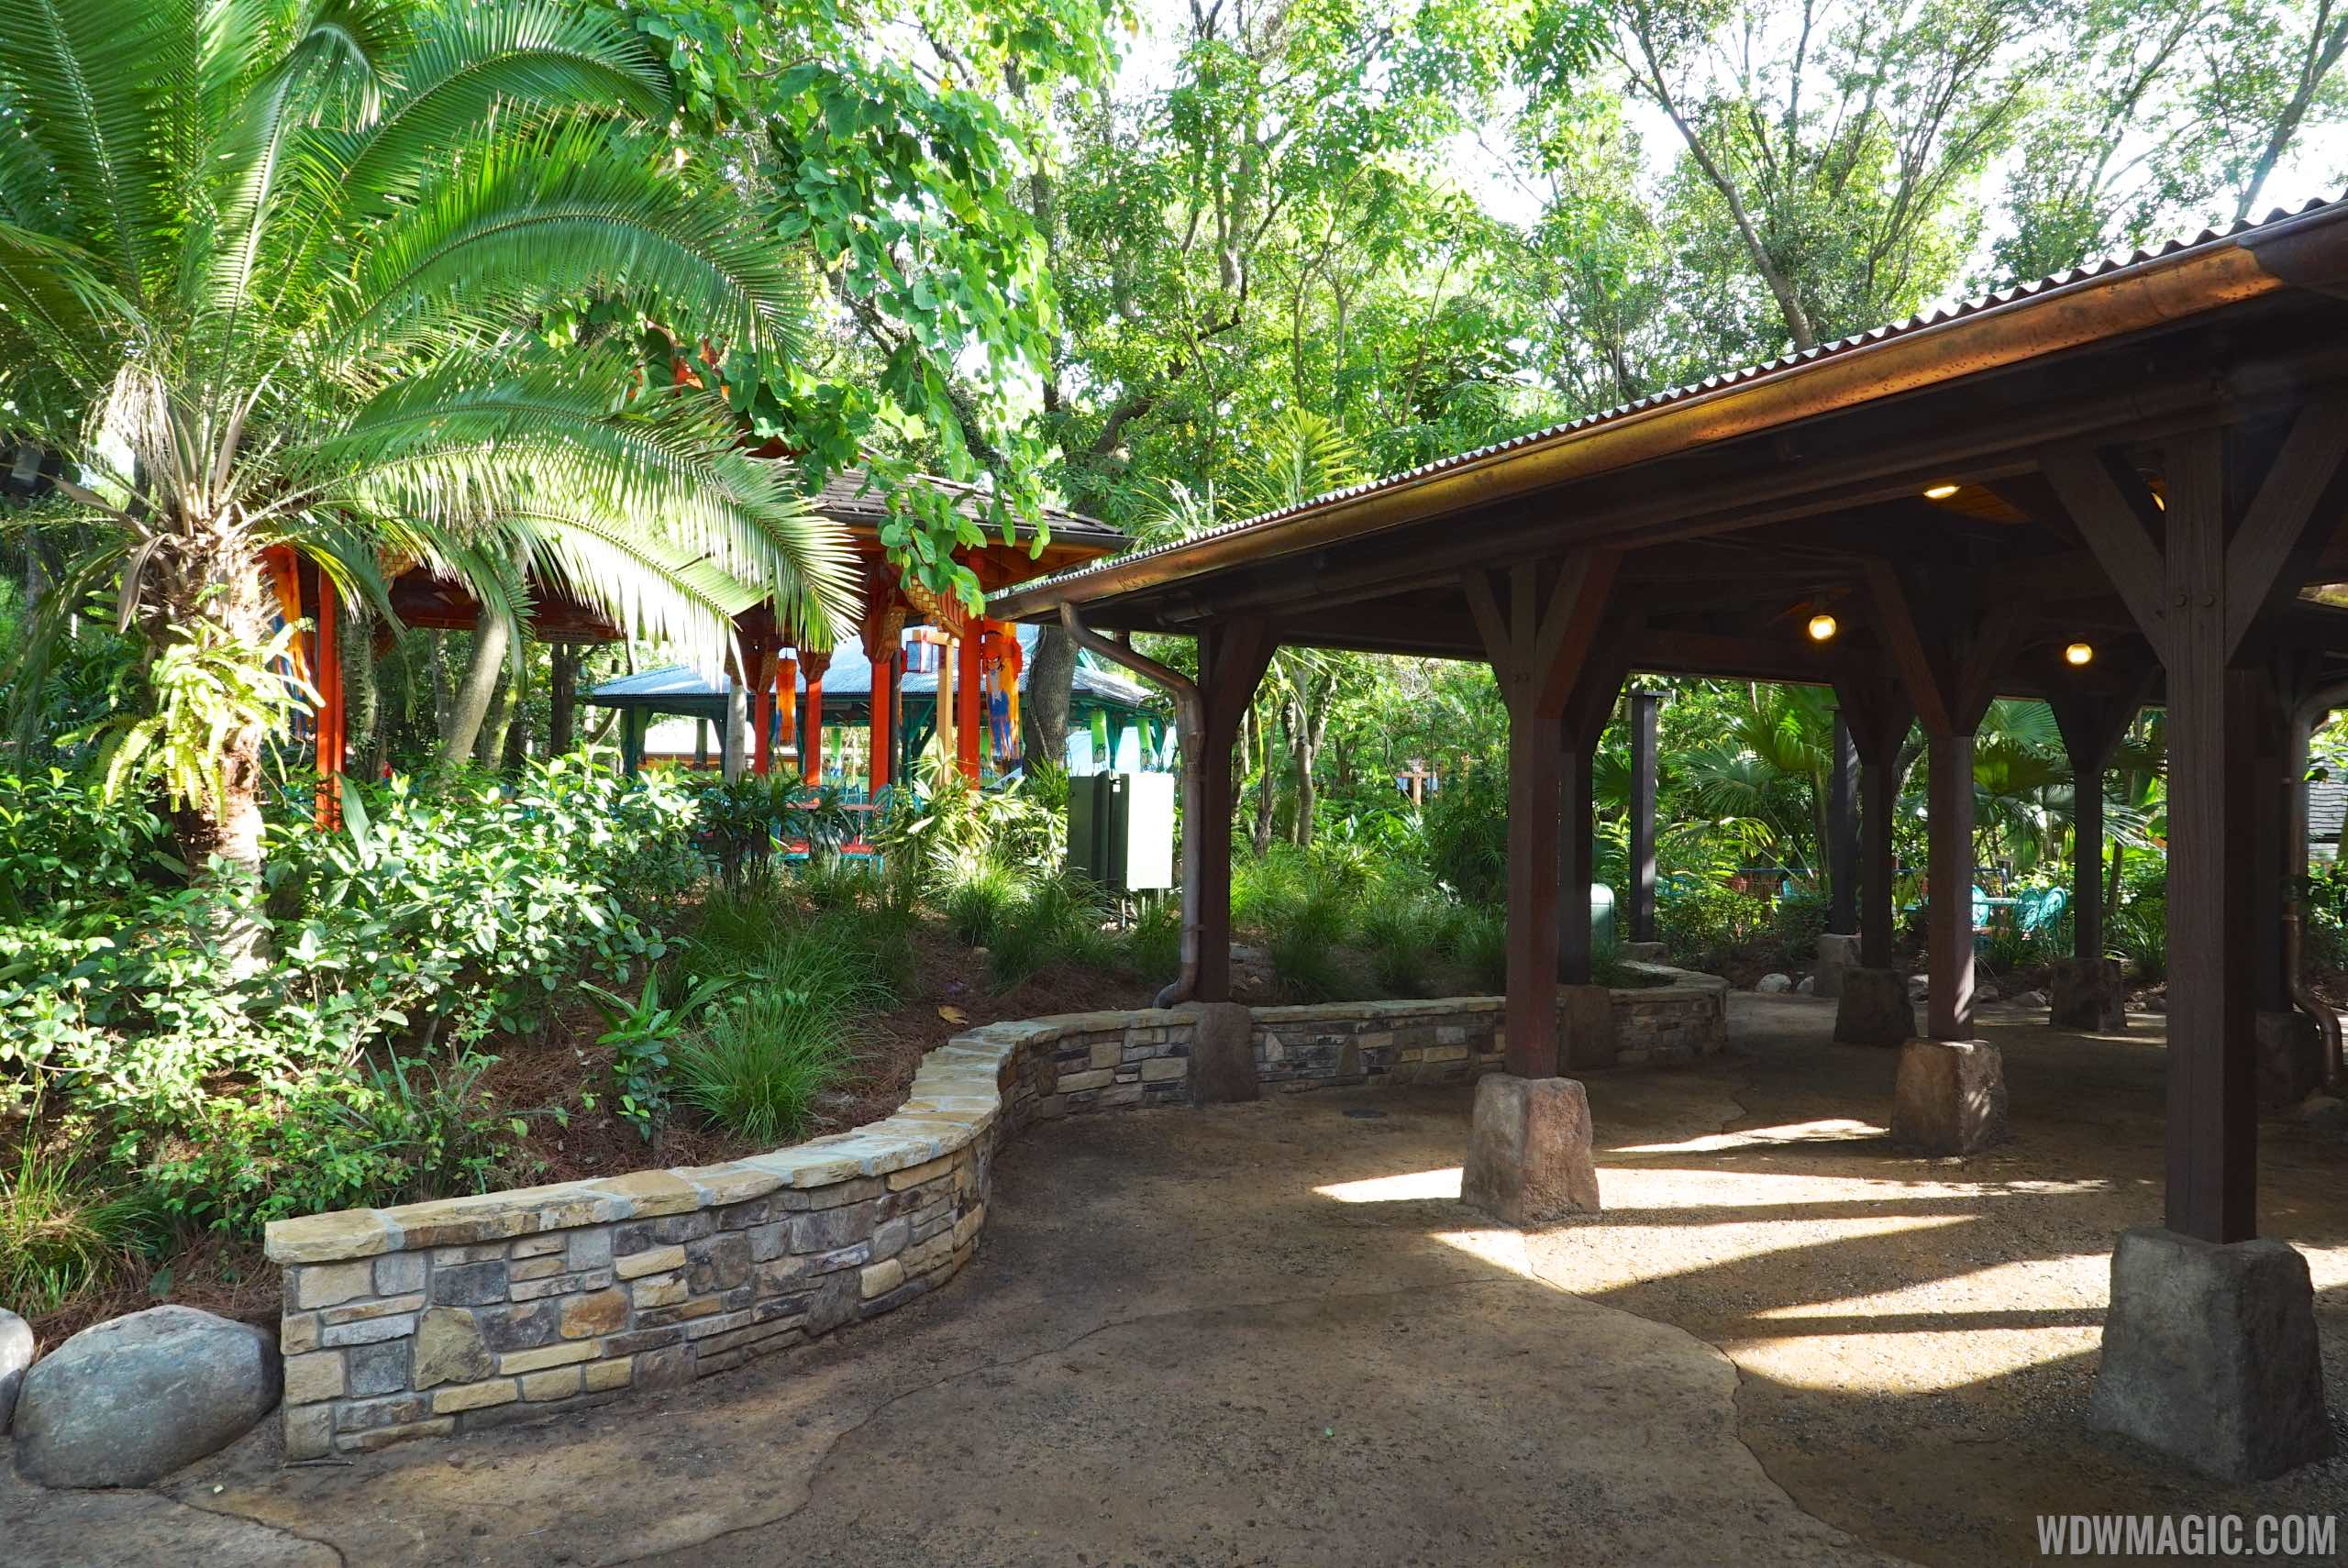 Flame Tree Barbecue - New covered walkways